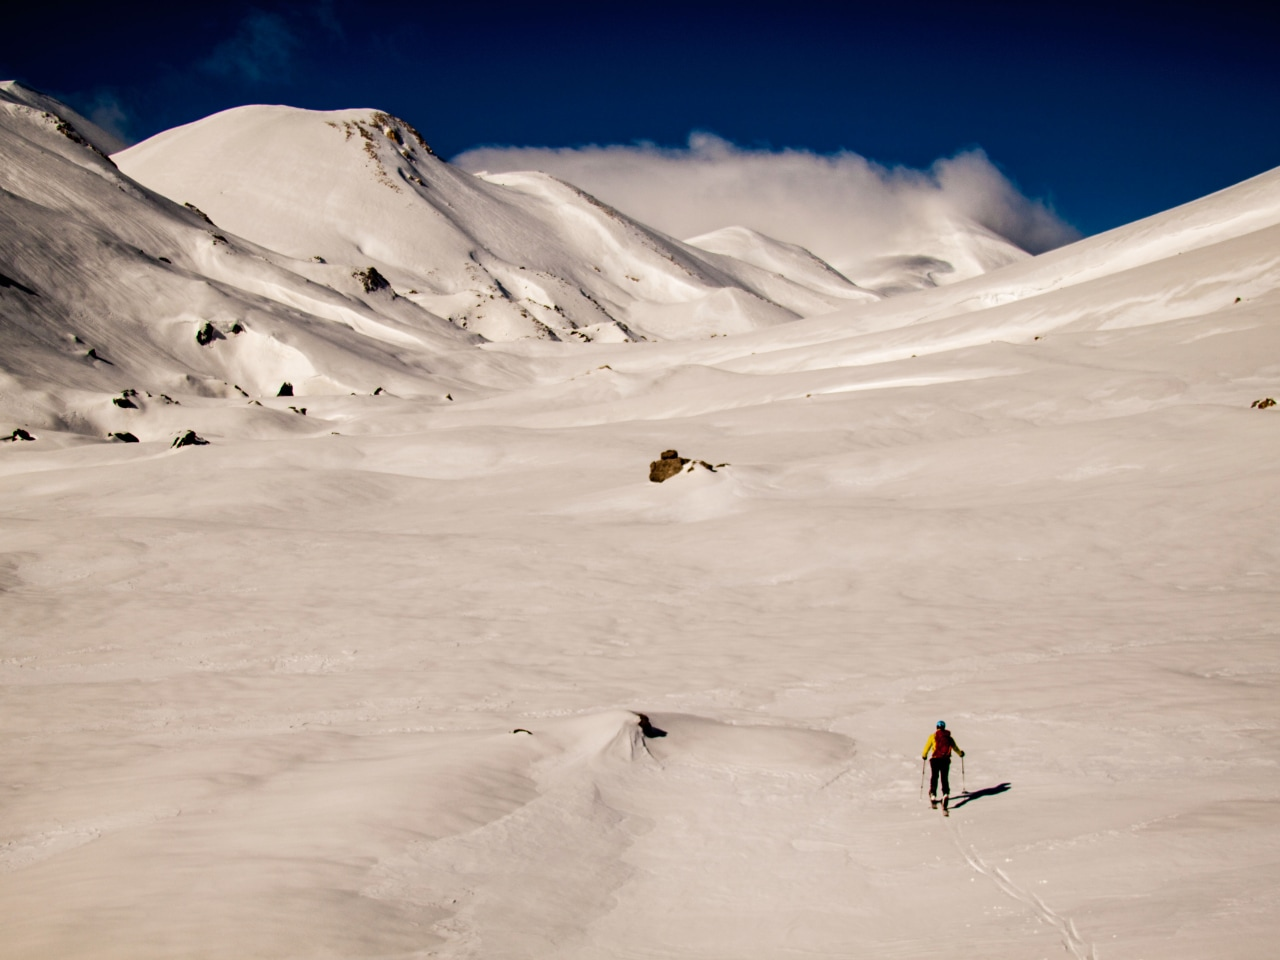 Crete: White Dreams – Uncovering An Untapped Ski Touring Paradise